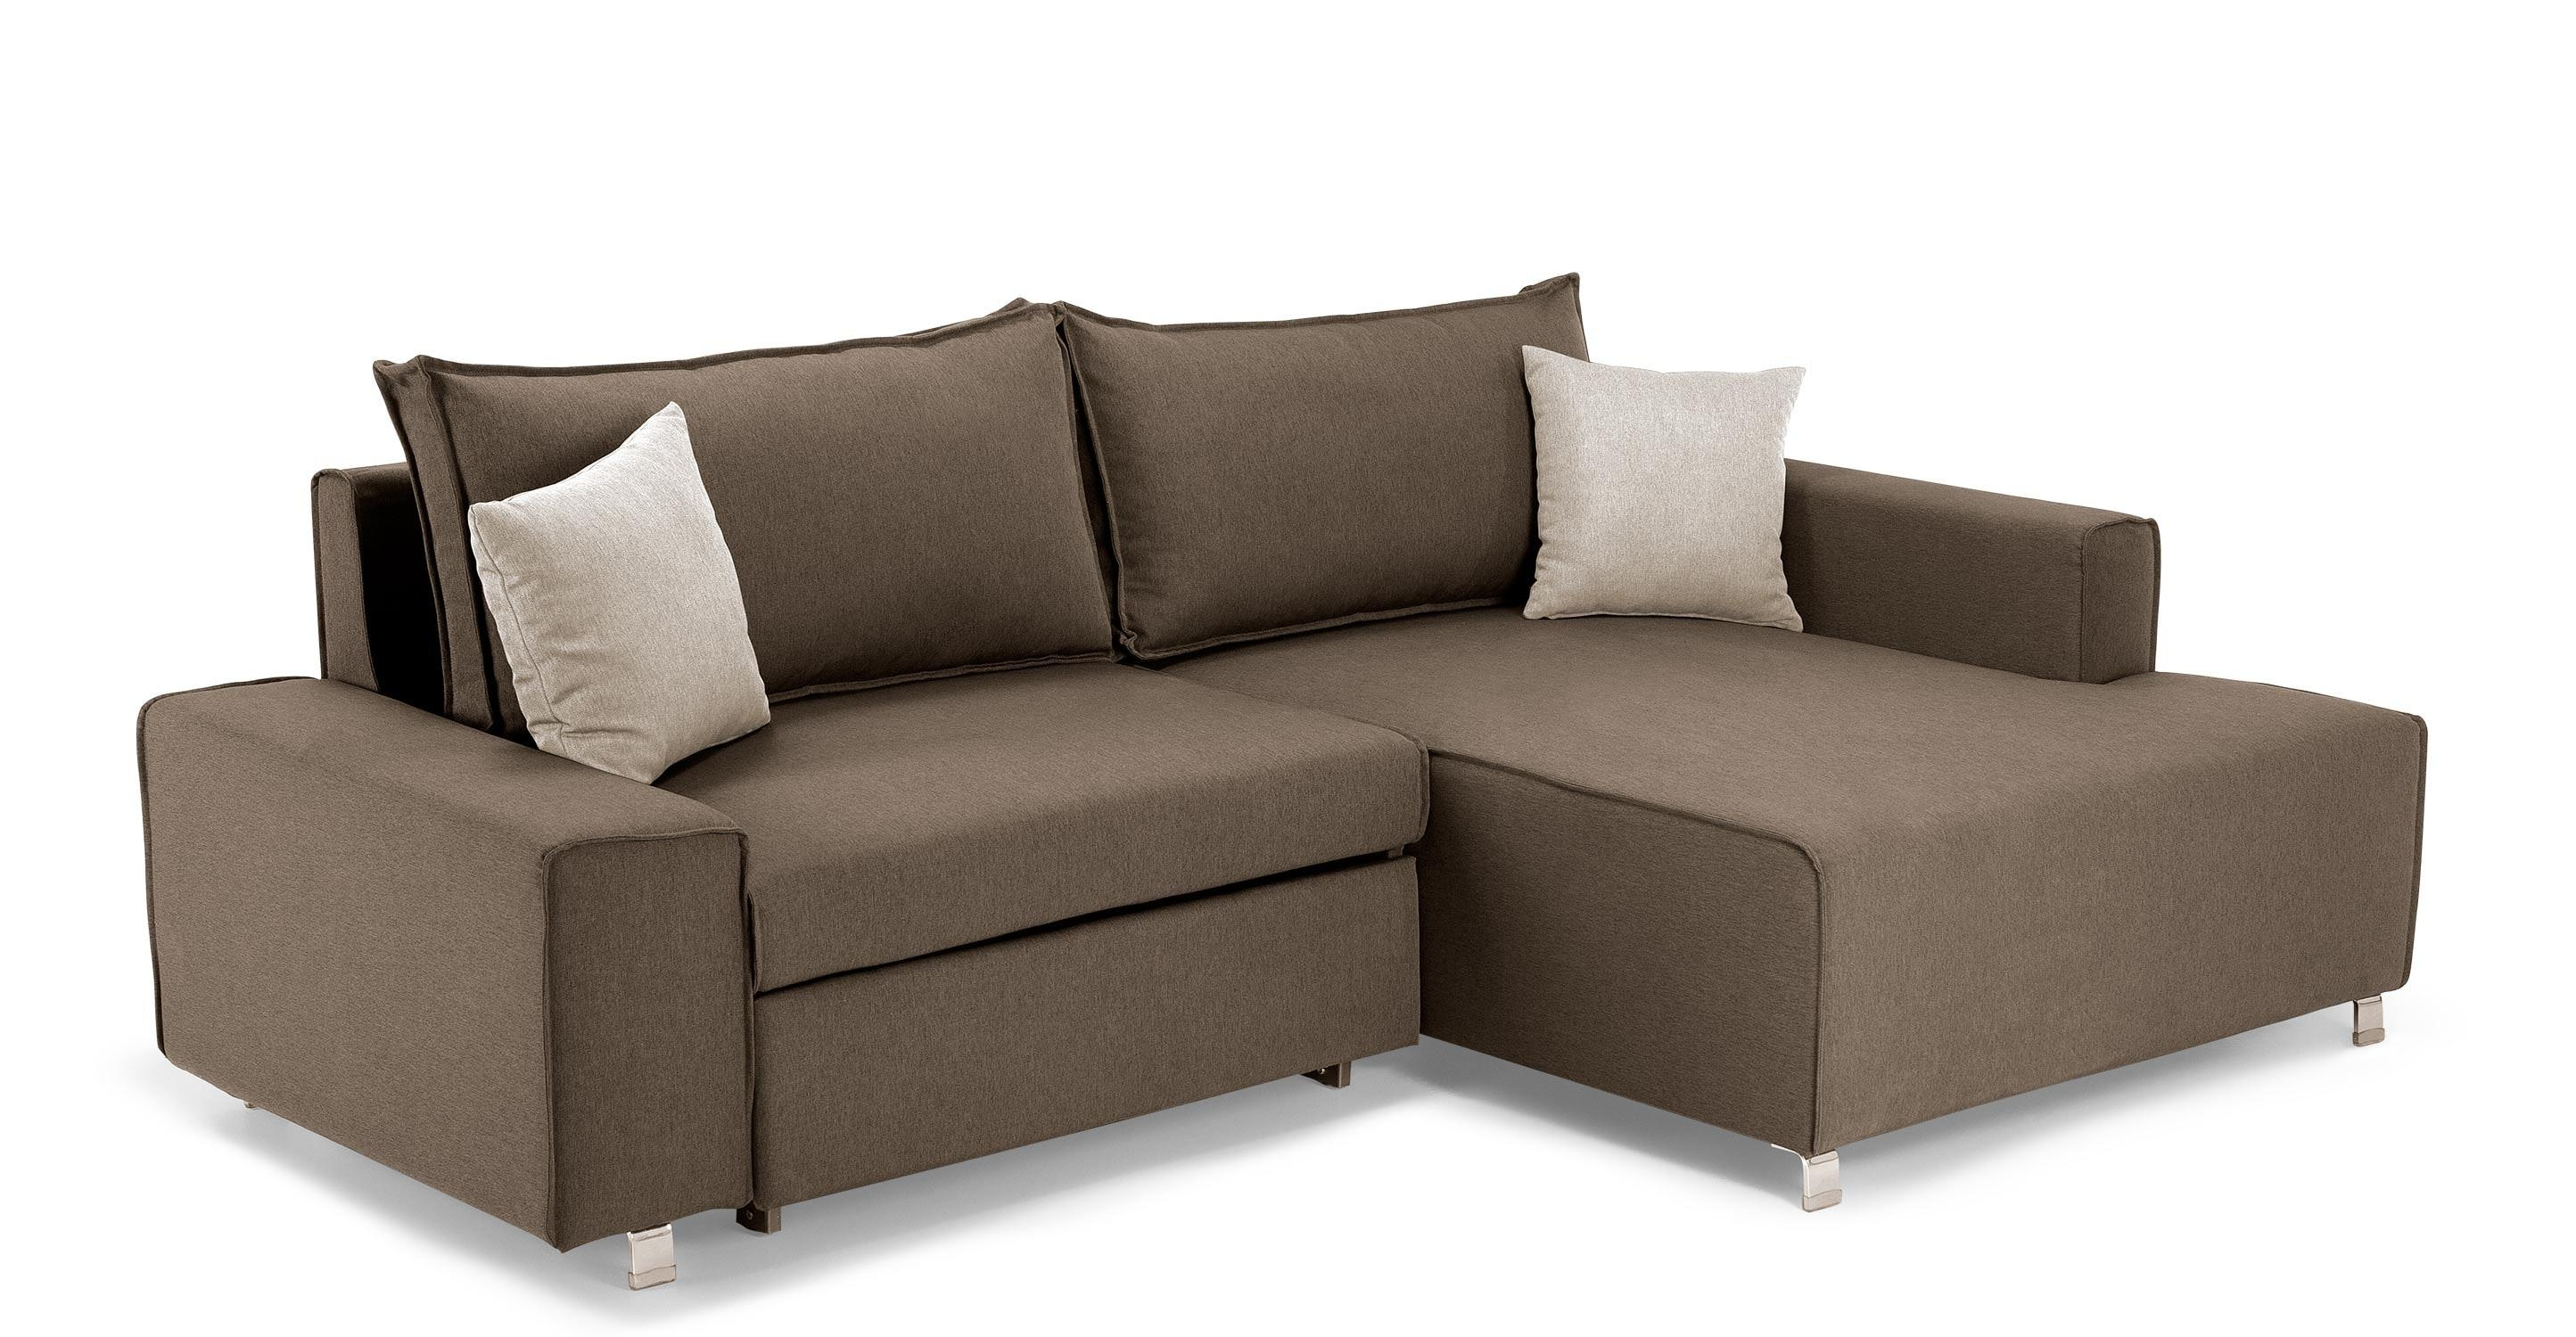 Sofas Center : Corner Sofa Beds Uk Cheap Birminghamcorner For With Regard To Cheap Corner Sofa Beds (View 7 of 20)